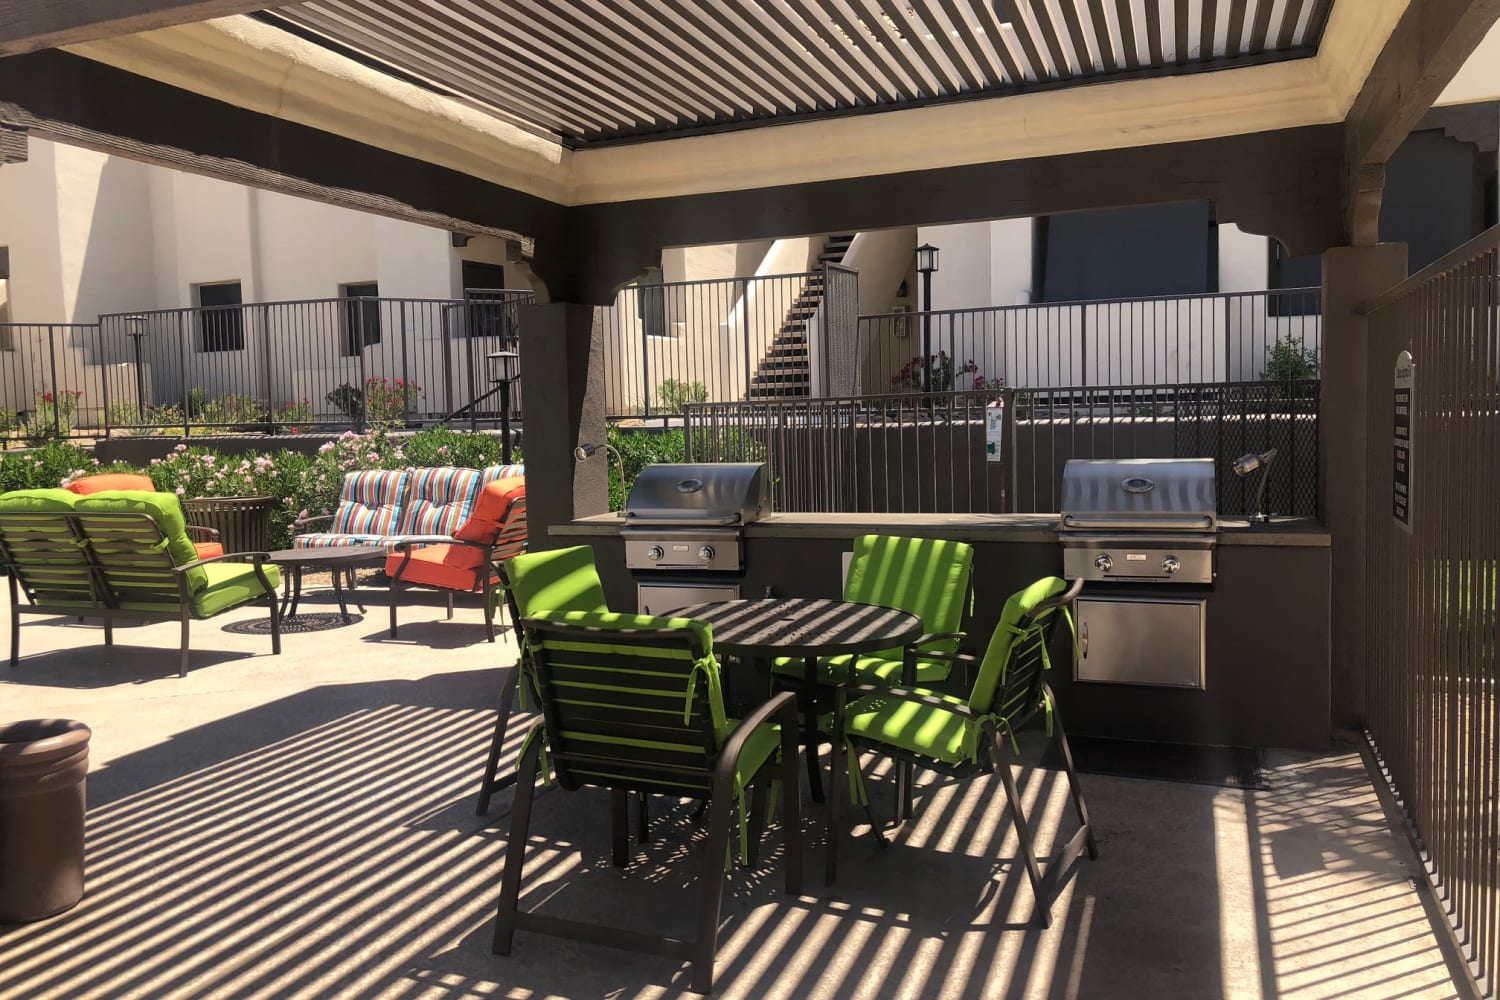 Outdoor seating in the courtyard at Casa Santa Fe Apartments in Scottsdale, Arizona